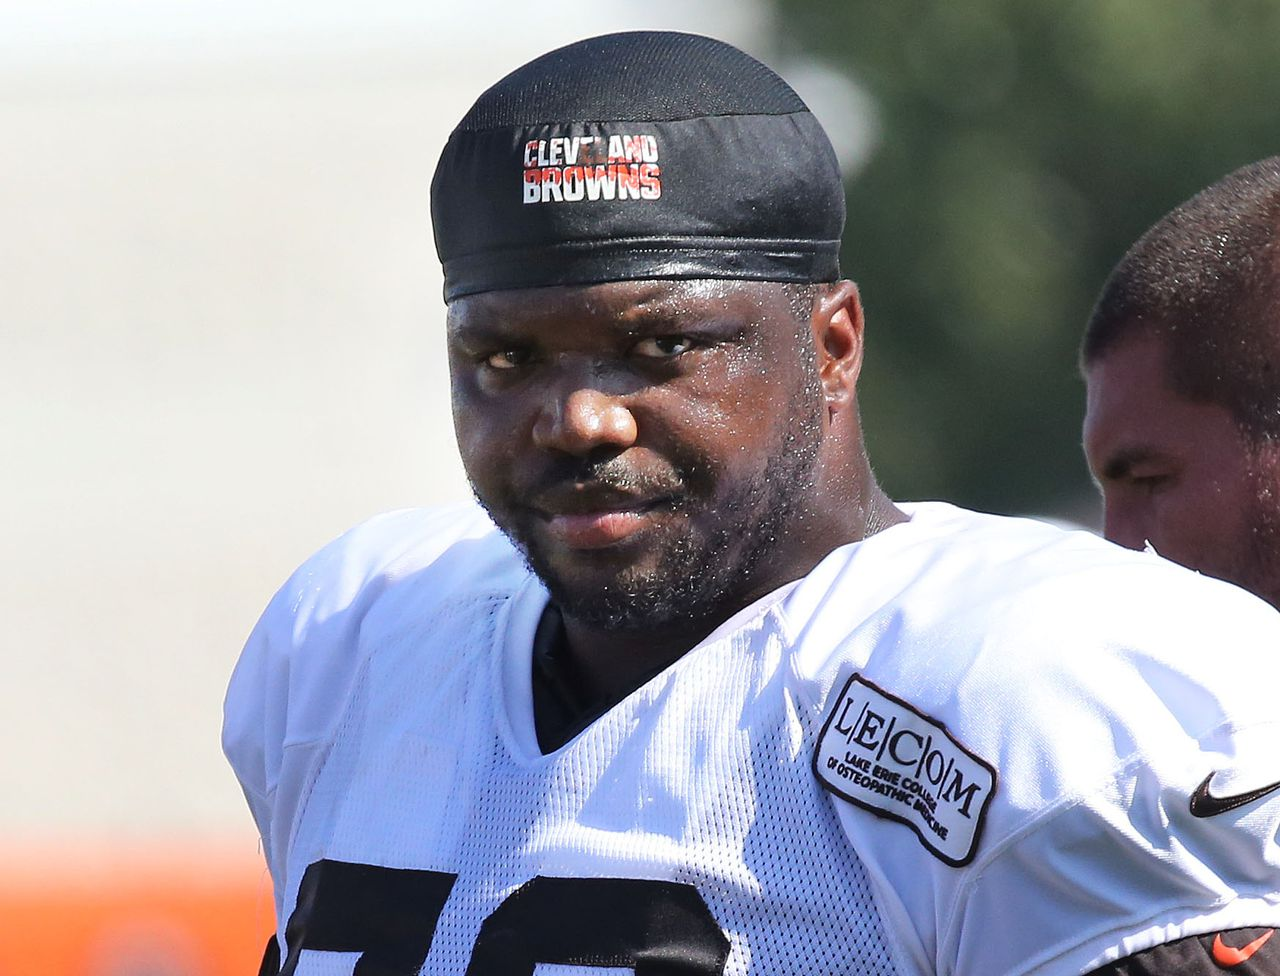 Latest Sports News: Browns' Greg Robinson in the concussion protocol; Justin McCray likely replacement for Steelers game – cleveland.com